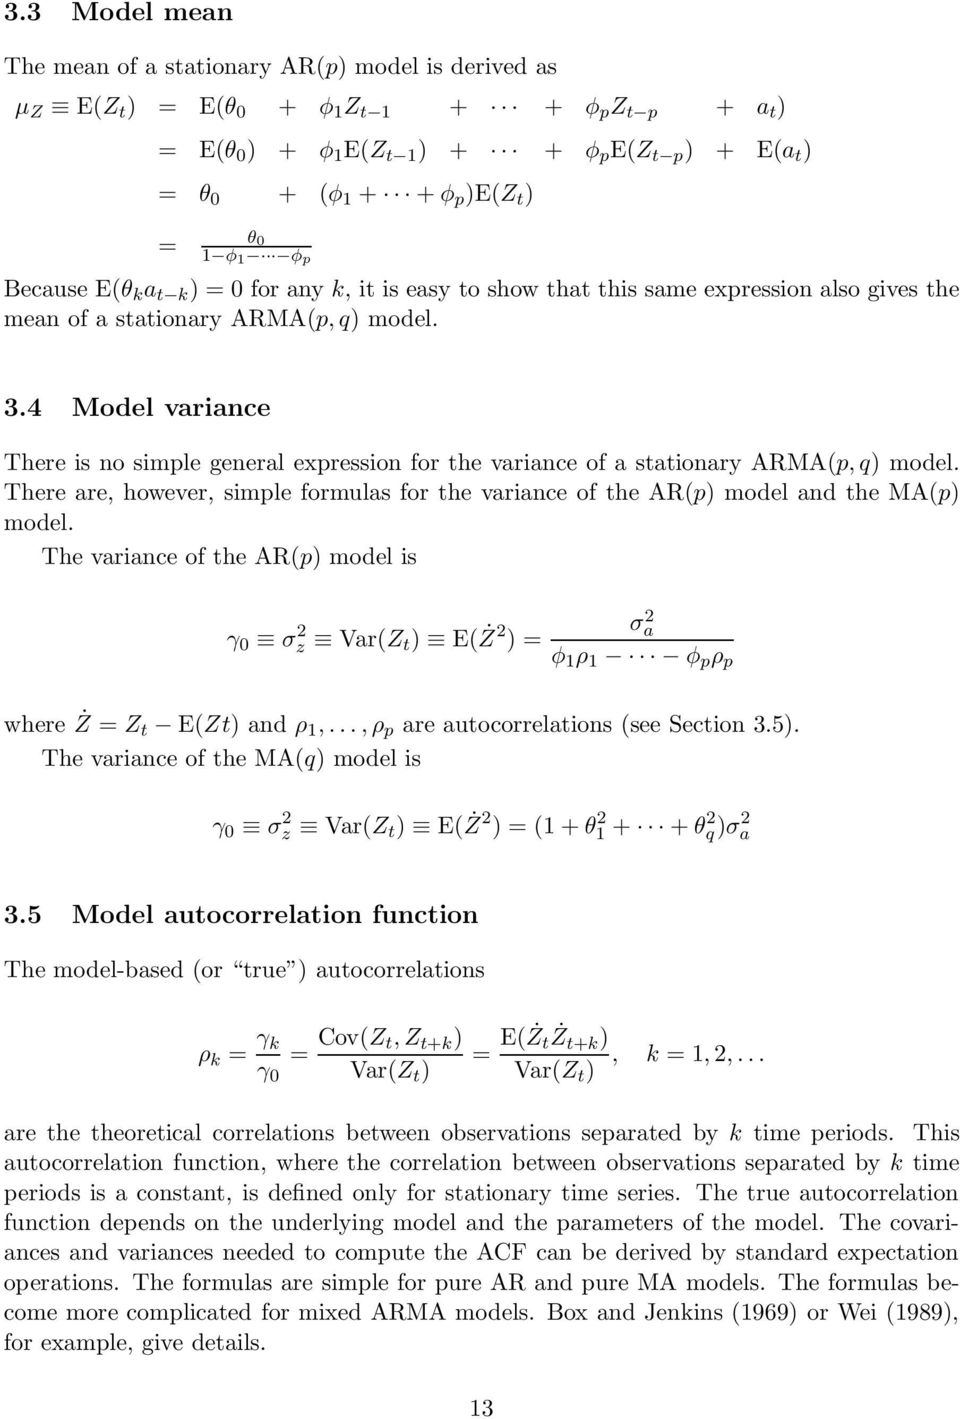 4 Model variance There is no simple general expression for the variance of a stationary ARMA(p, q) model. There are, however, simple formulas for the variance of the AR(p) model and the MA(p) model.